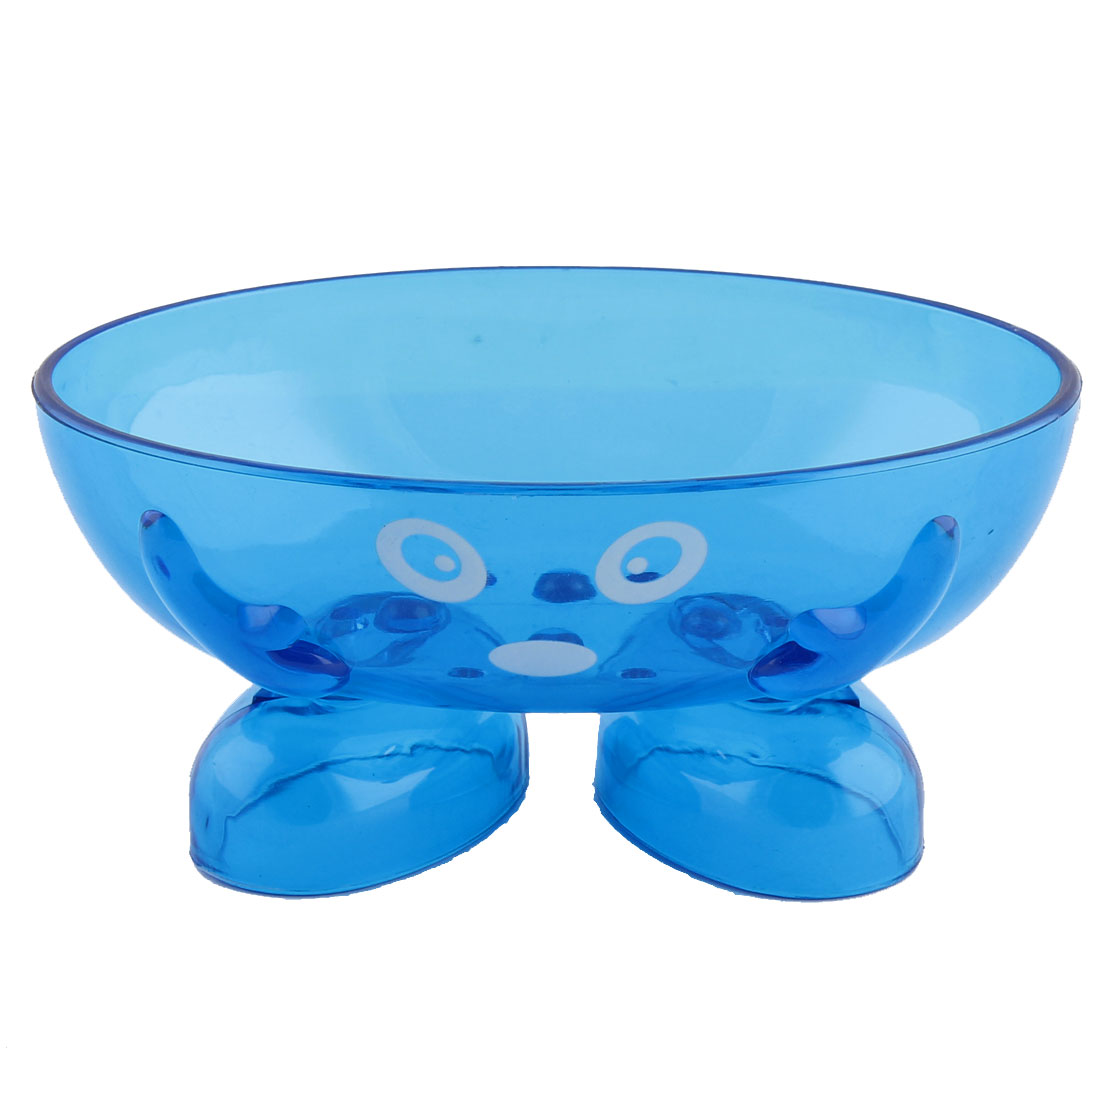 Home Bathroom Plastic Cartoon Face Pattern Soap Box Container Case Holder Blue